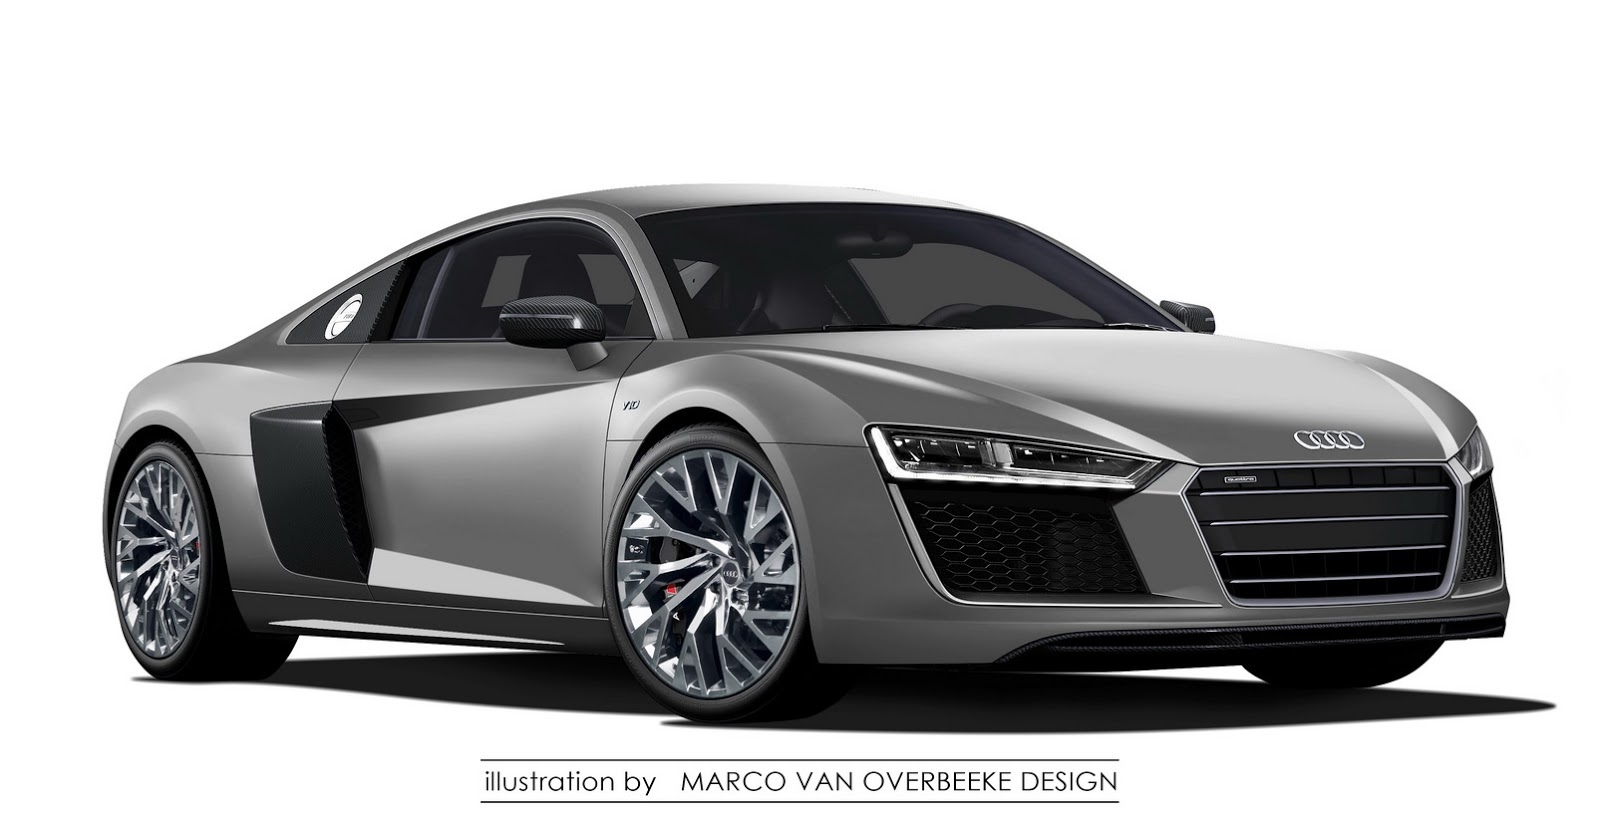 new 2016 audi r8 illustration looks like the real thing carscoops. Black Bedroom Furniture Sets. Home Design Ideas